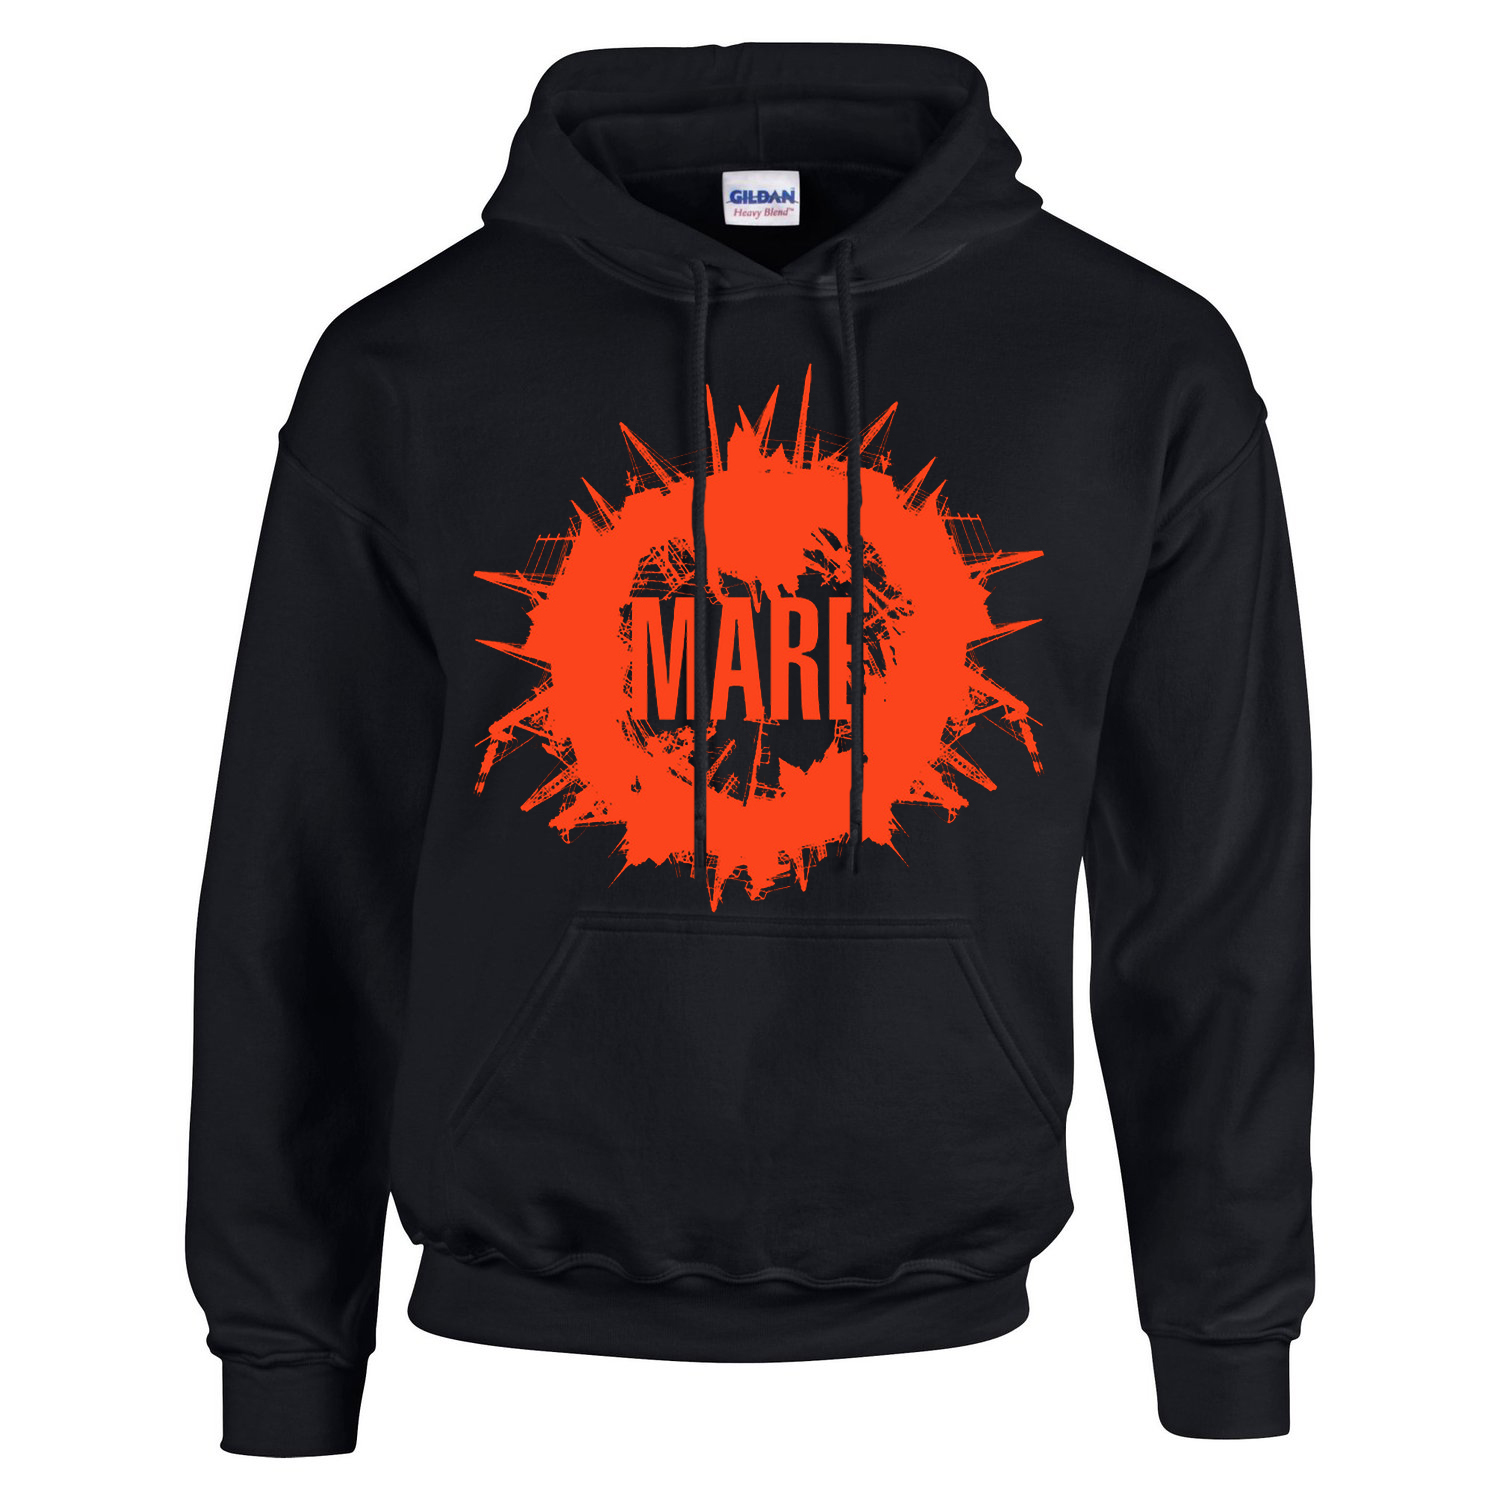 Mare - red logo hoodie